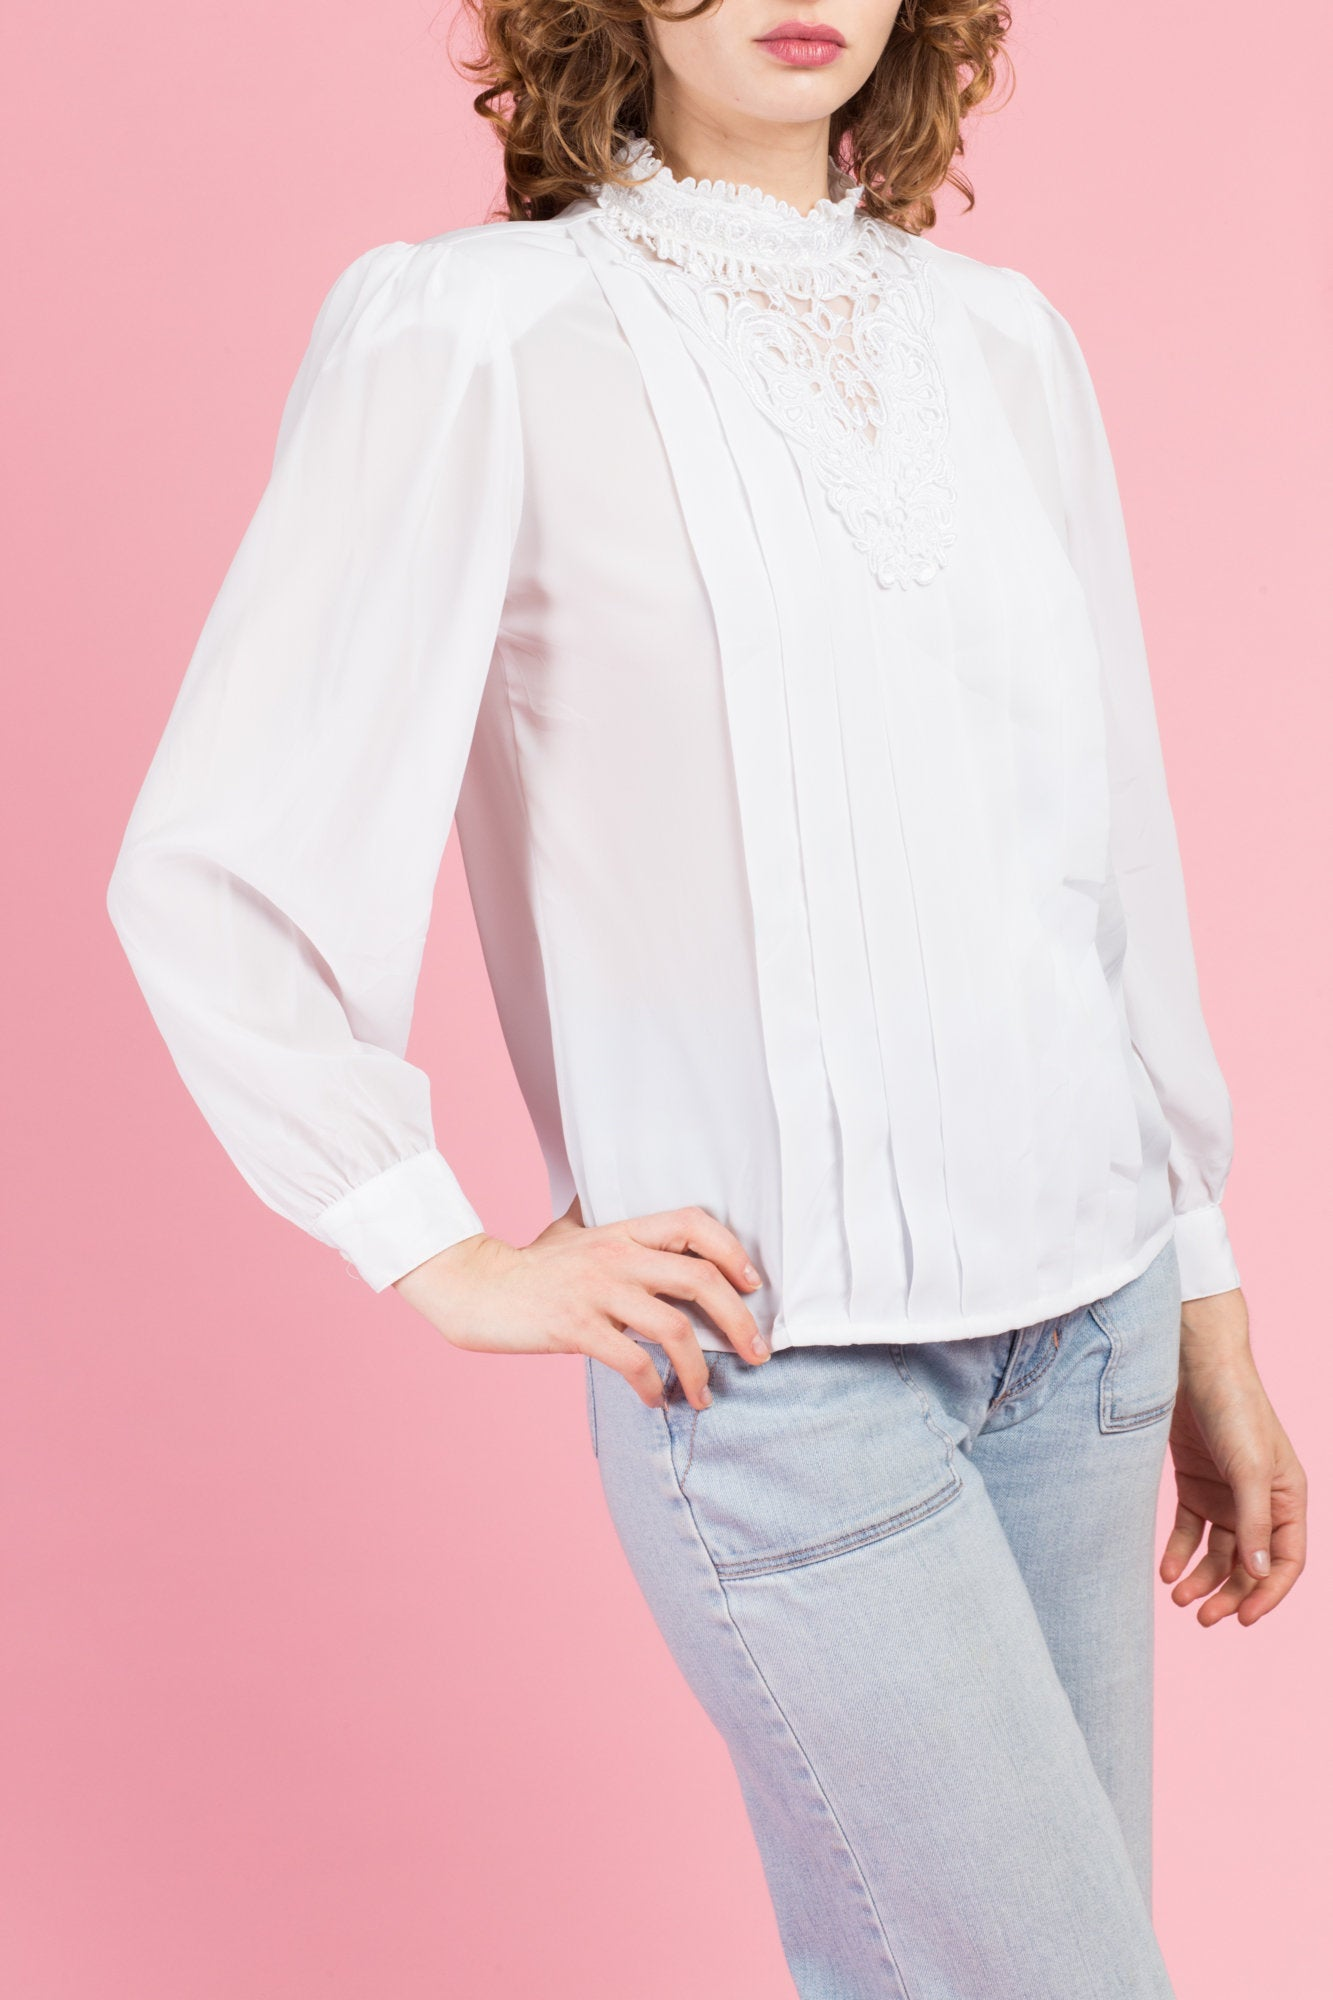 80s White Pleated Blouse - Medium